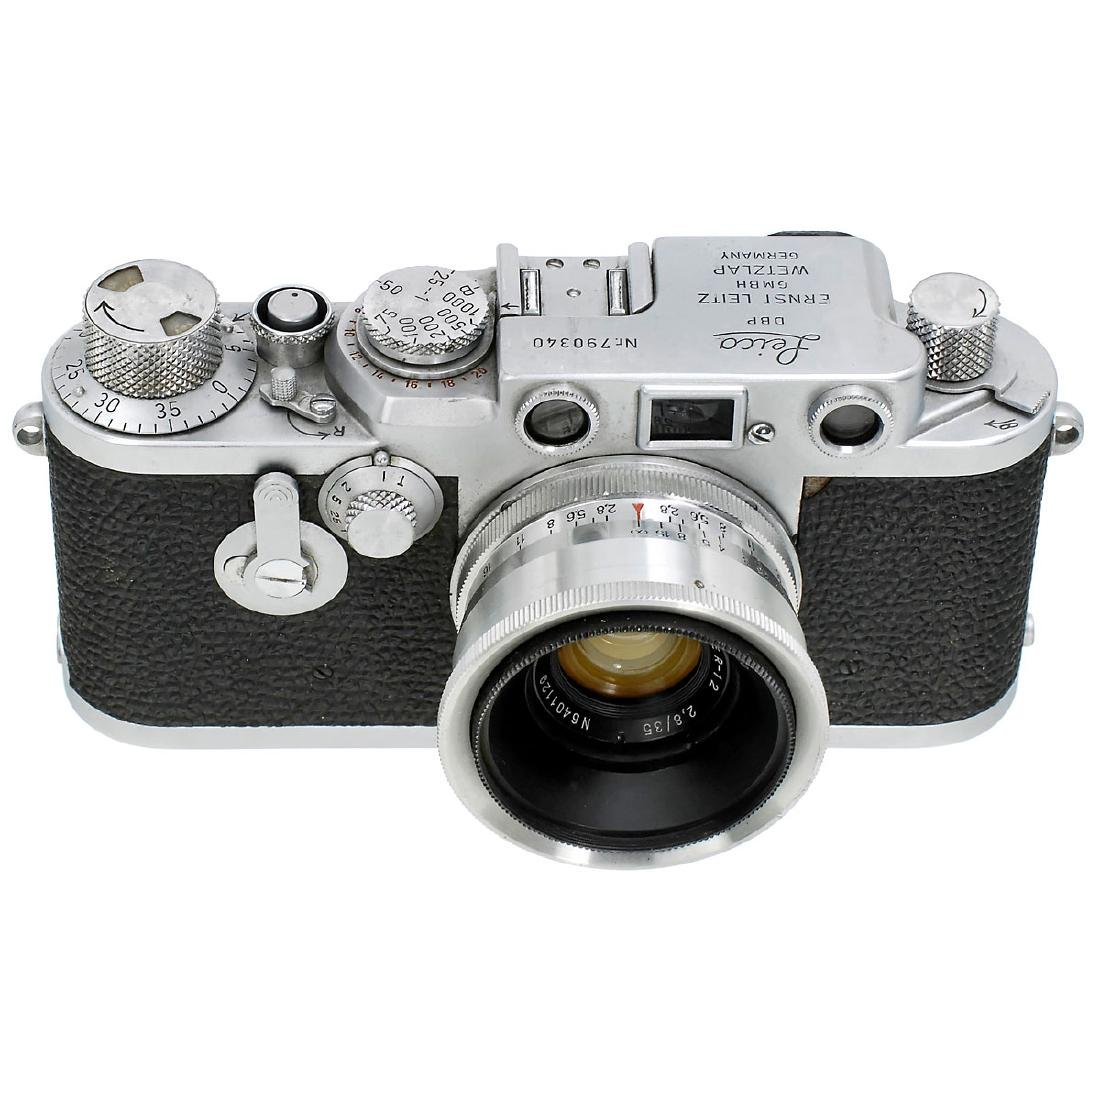 Leica IIIf with Jupiter-12 2,8/35, 1955